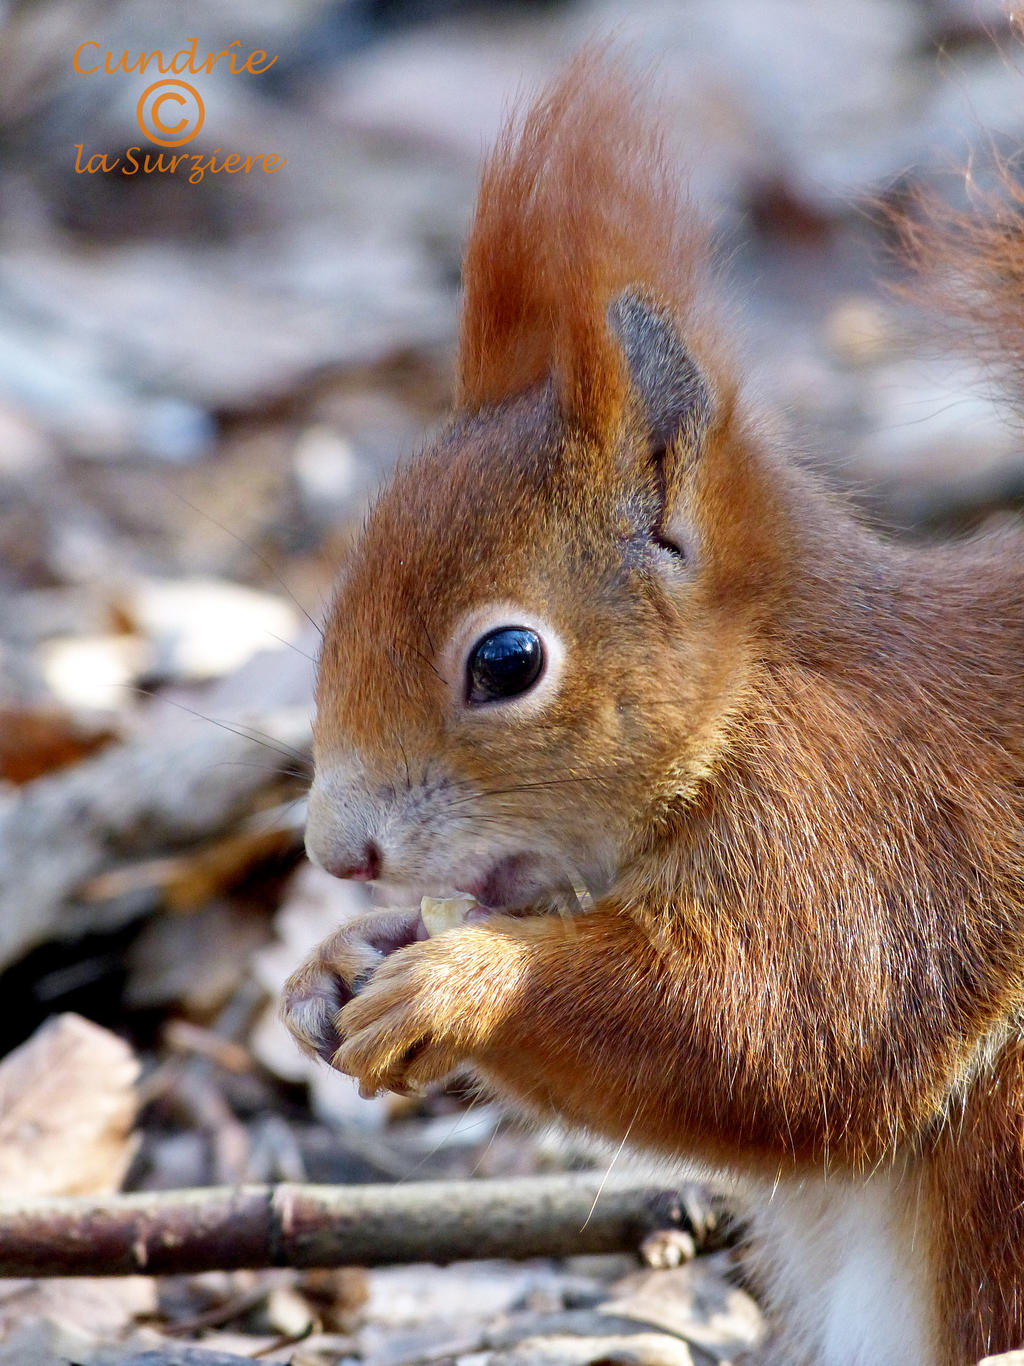 Squirrel 93 by Cundrie-la-Surziere